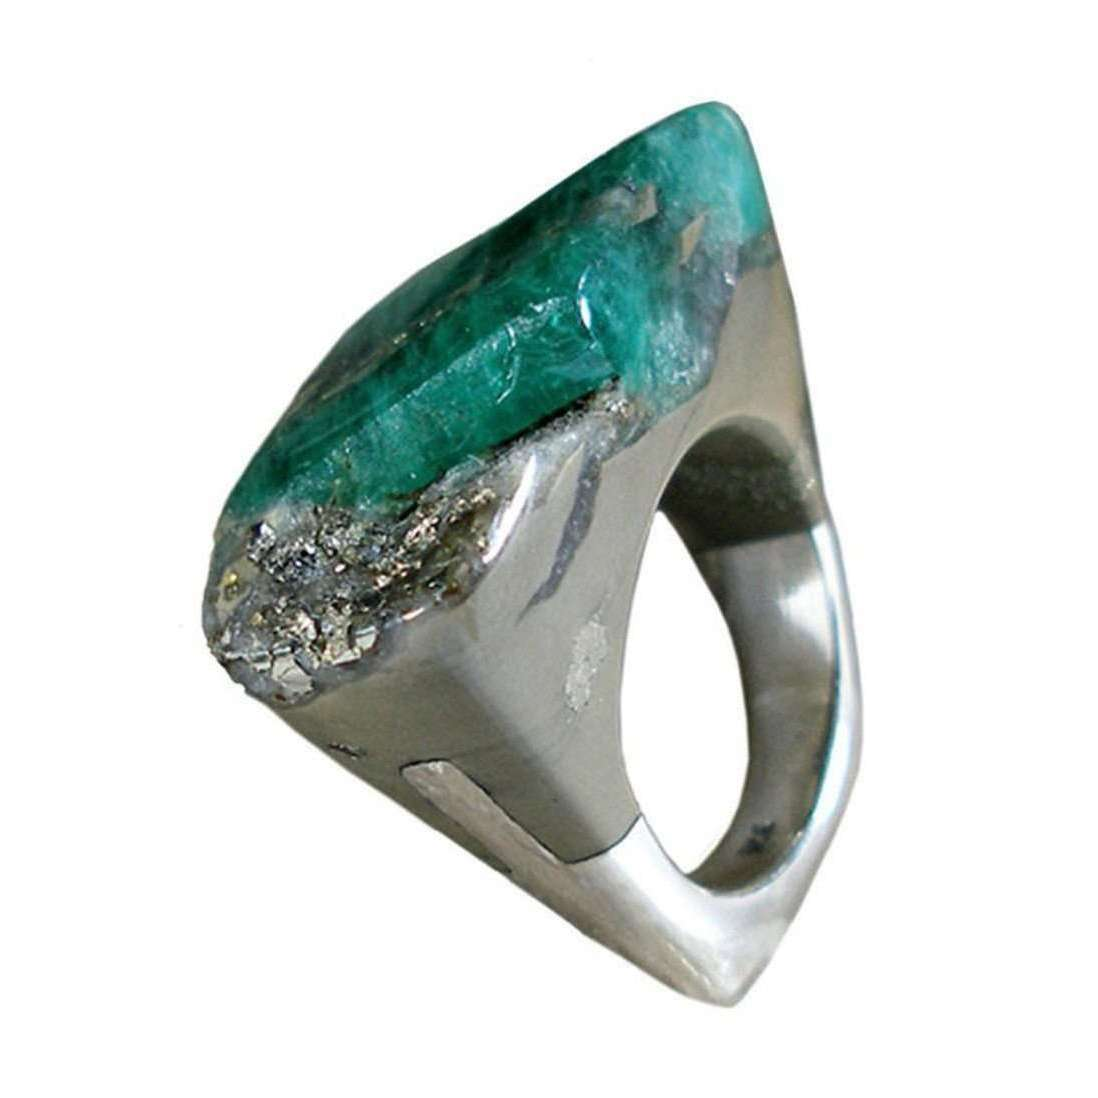 Emerald Ring - Piety-Pasionae-JewelStreet US